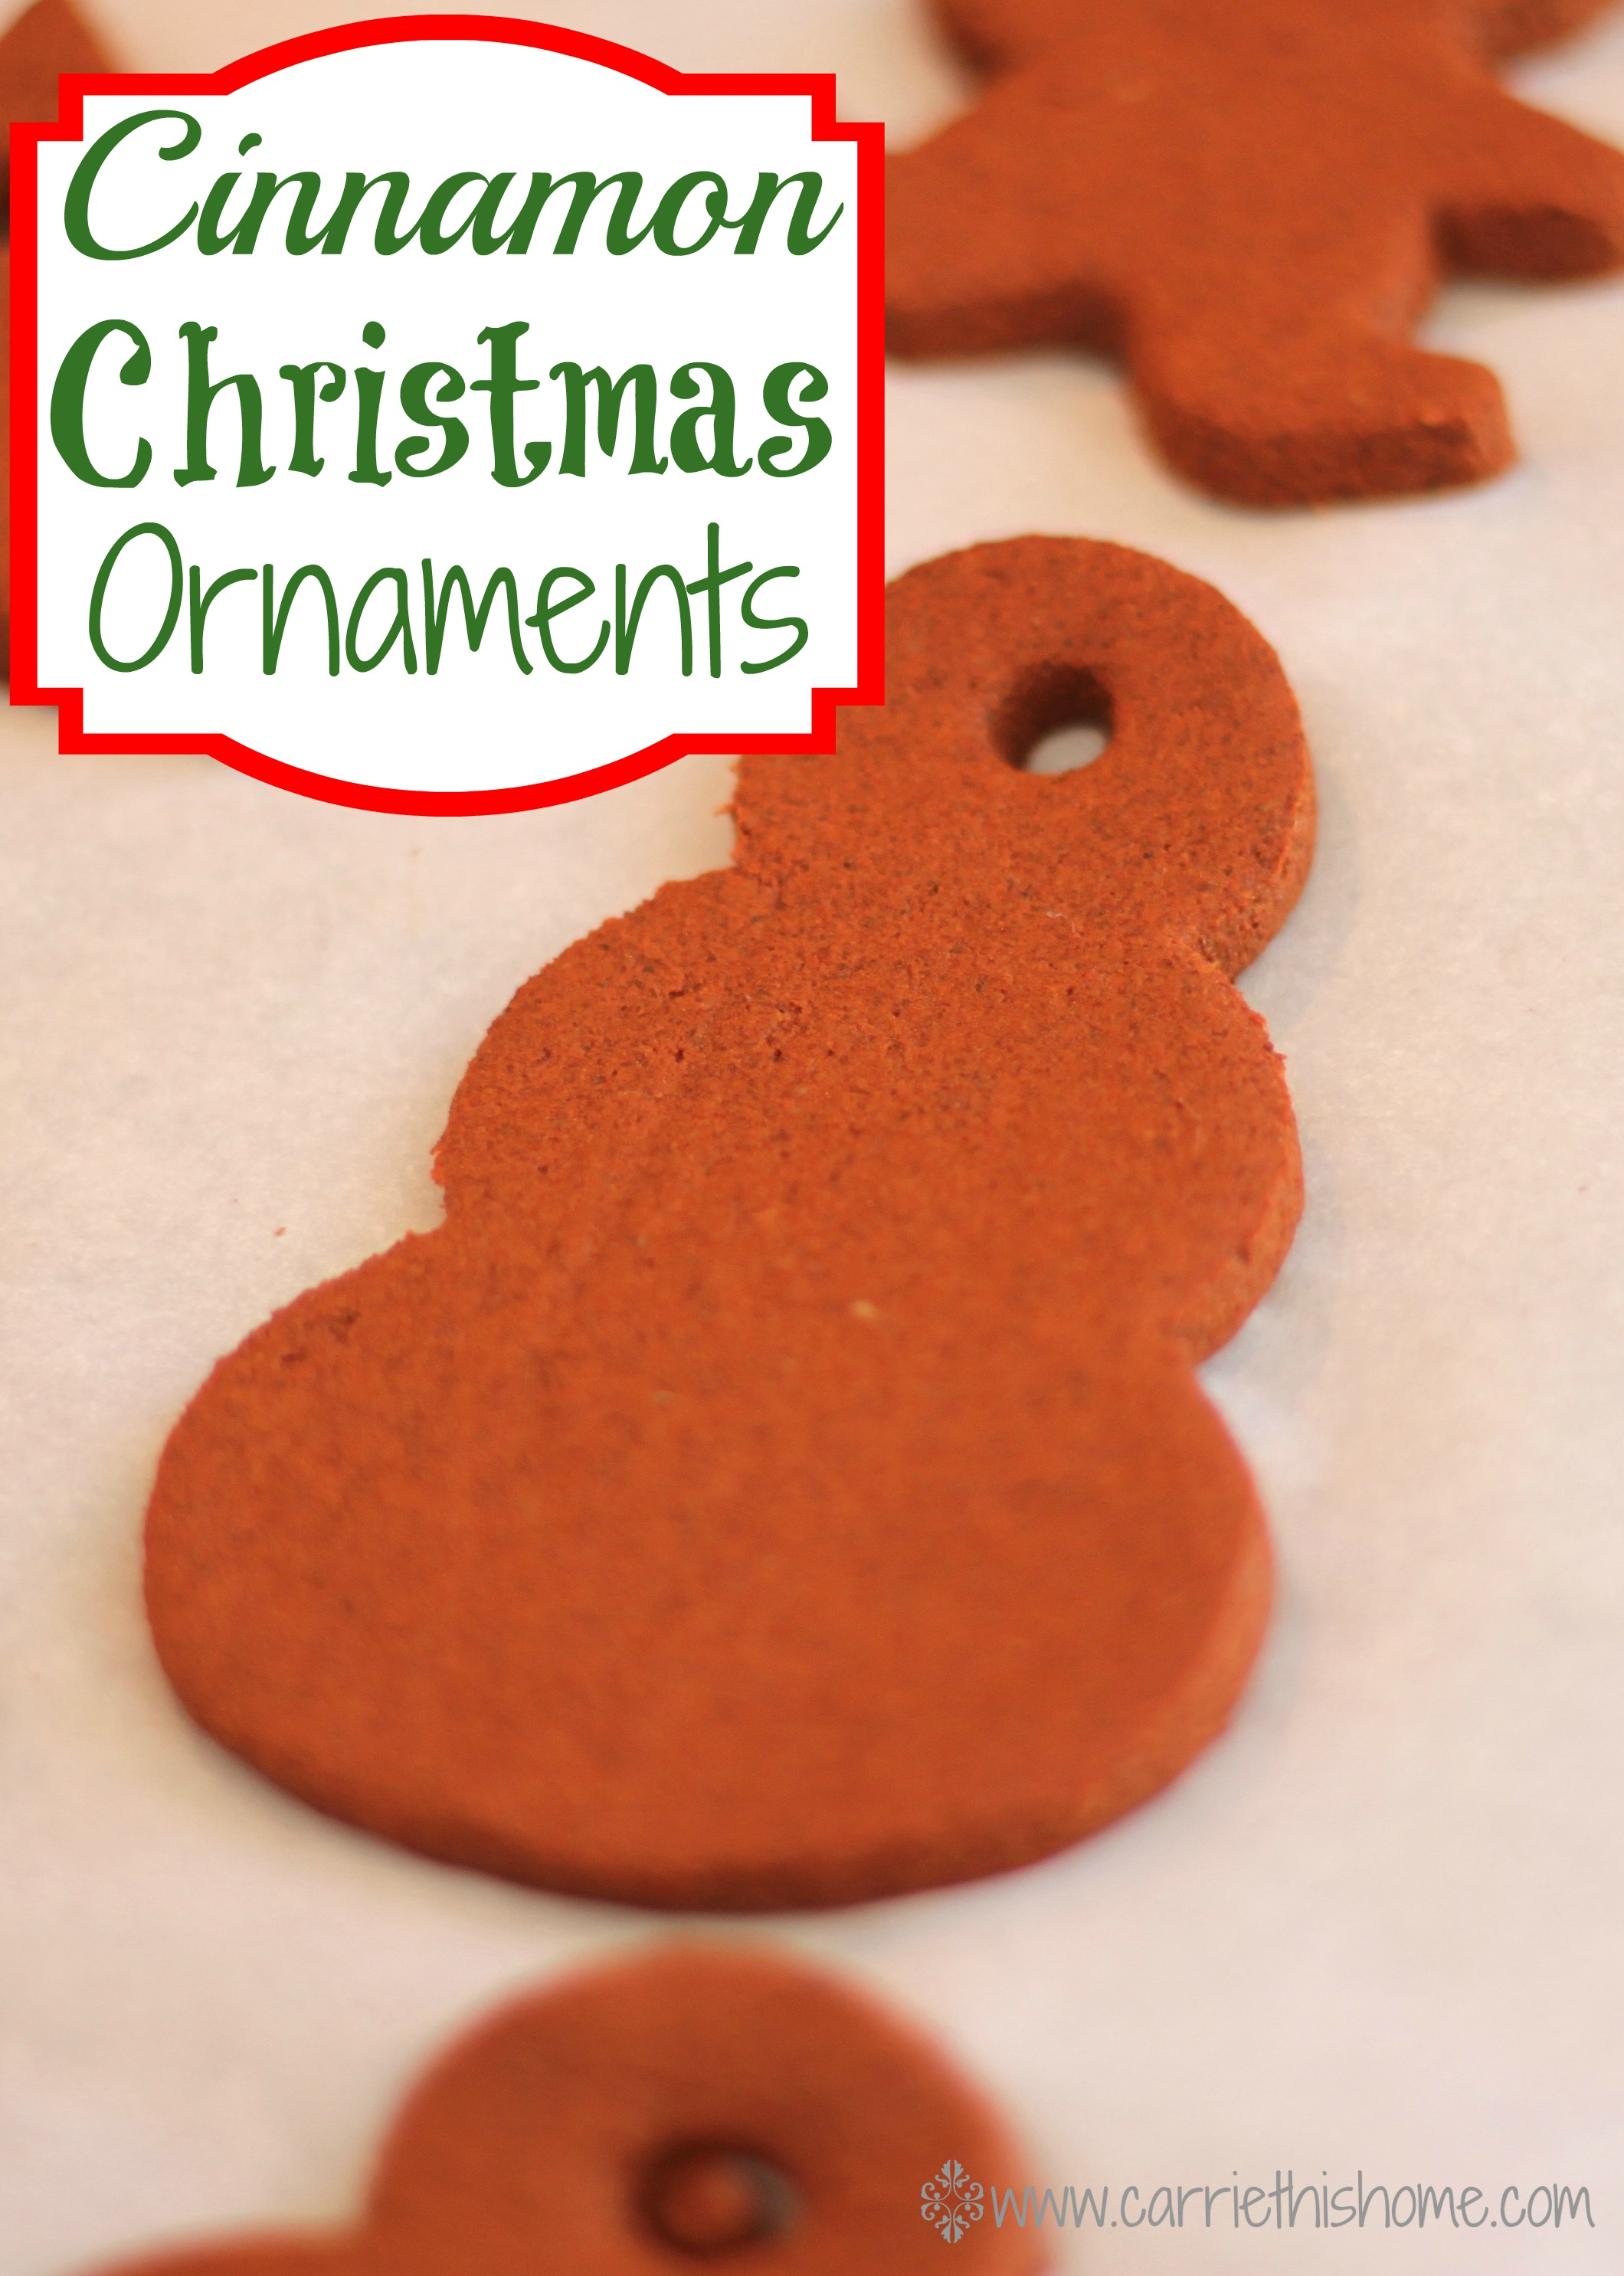 Cinnamon Christmas Ornaments Activity